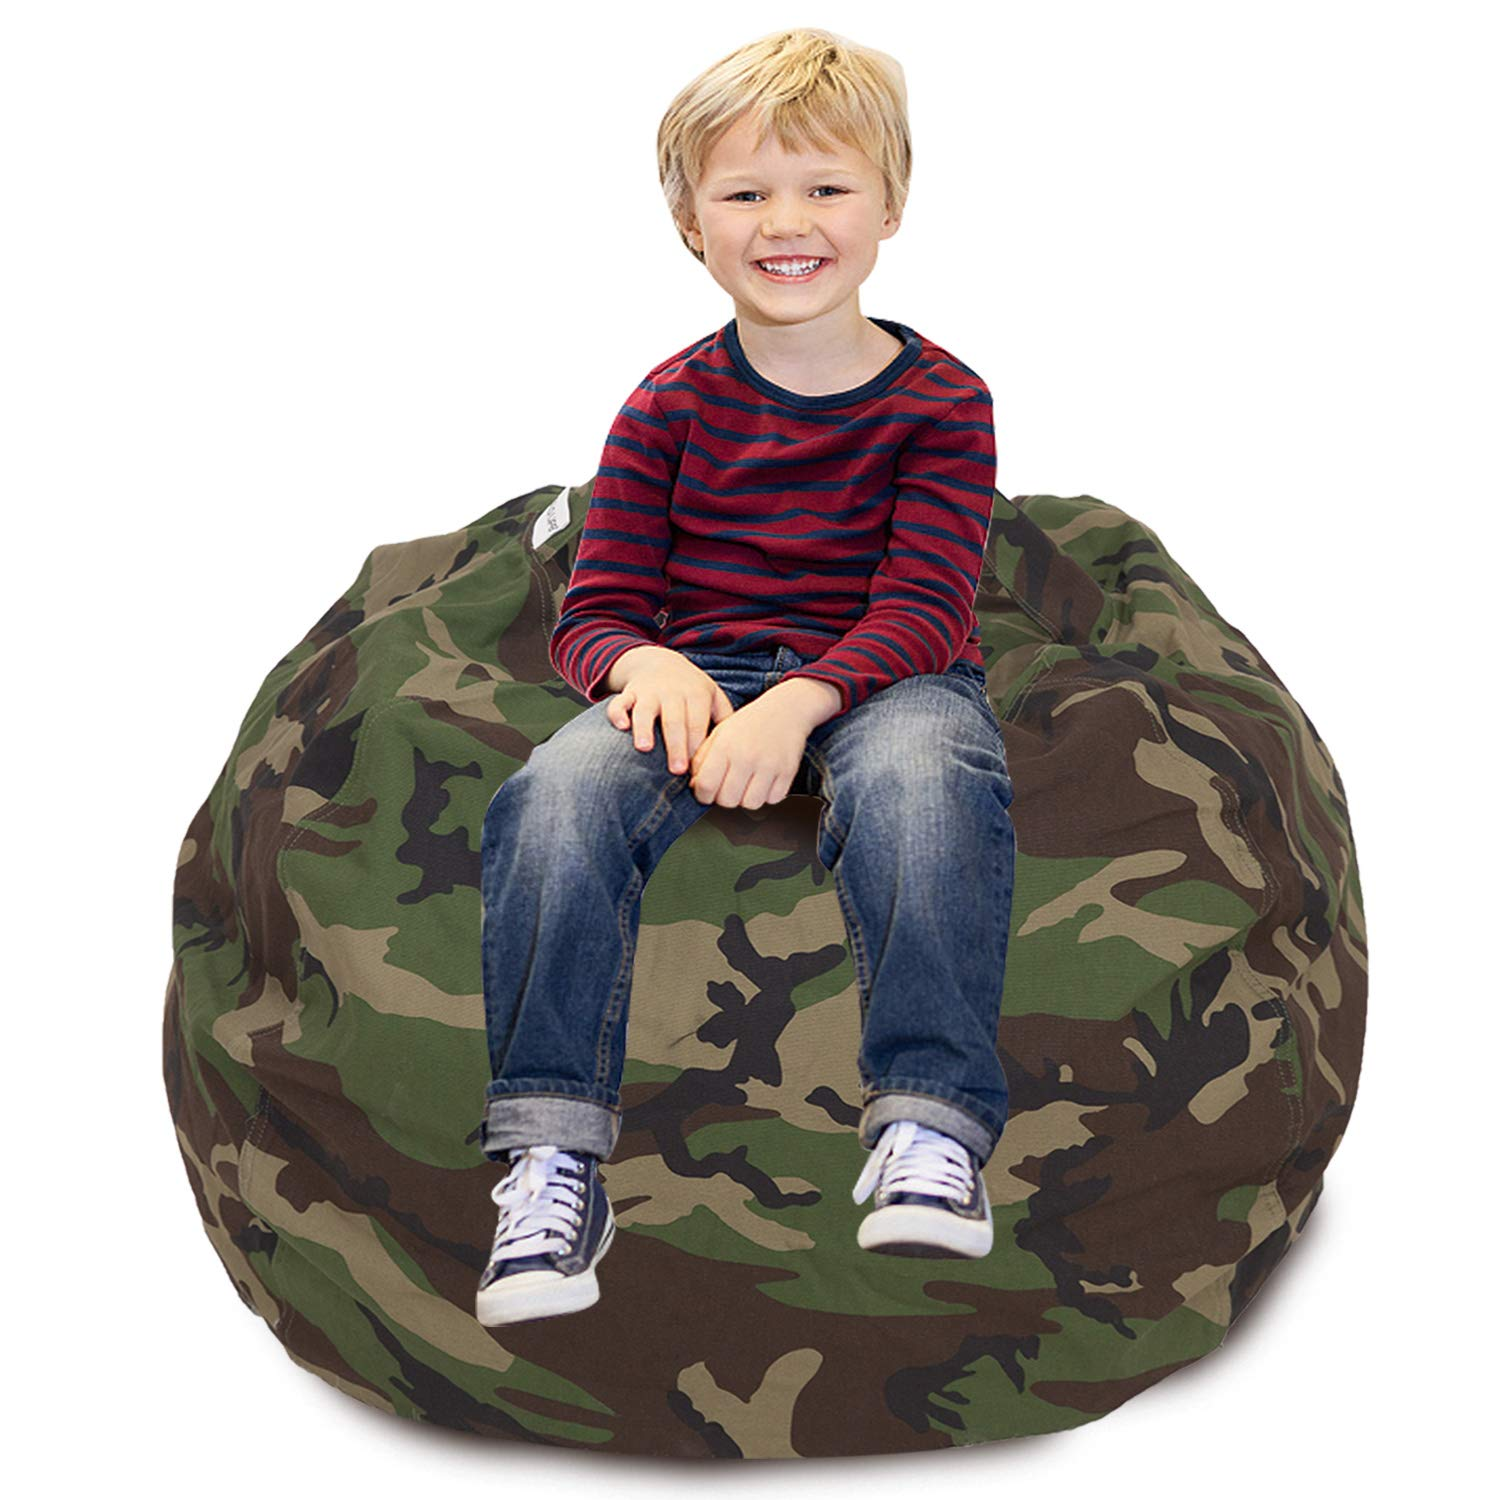 Superb Cala Stuffed Animal Storage Bean Bag Chair Extra Large 38 Kids Soft Toy Storage 100 Cotton Canvas Bean Bag Chair Camouflage Camellatalisay Diy Chair Ideas Camellatalisaycom